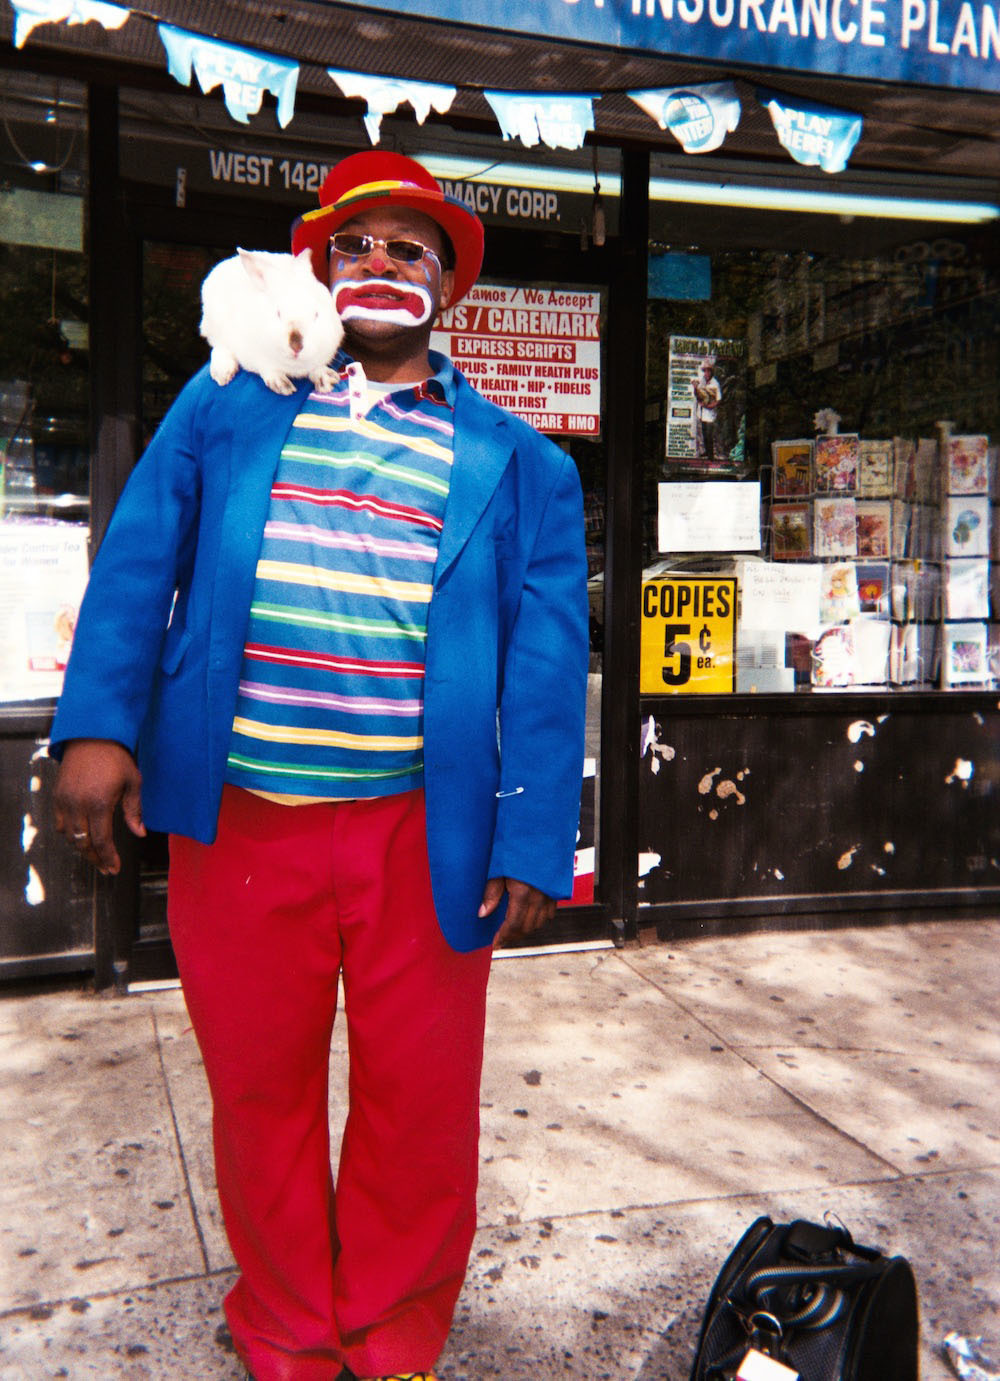 First-Person Shooter: Photos of a Clown-Magician Pulling Tricks and Cracking Smiles